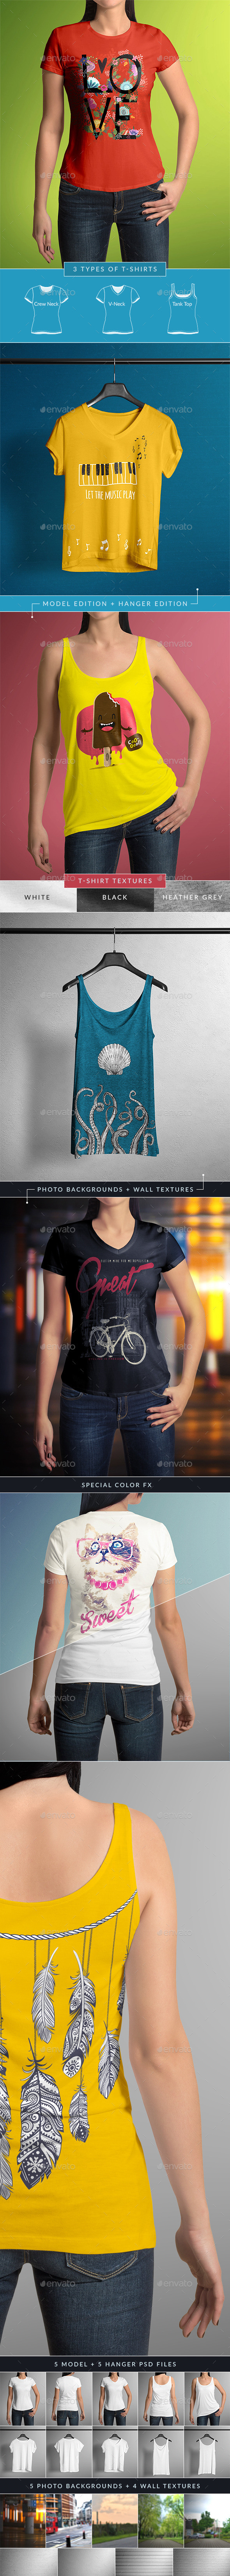 T-Shirt Mock-Up Female Model / Classic Edition - T-shirts Apparel